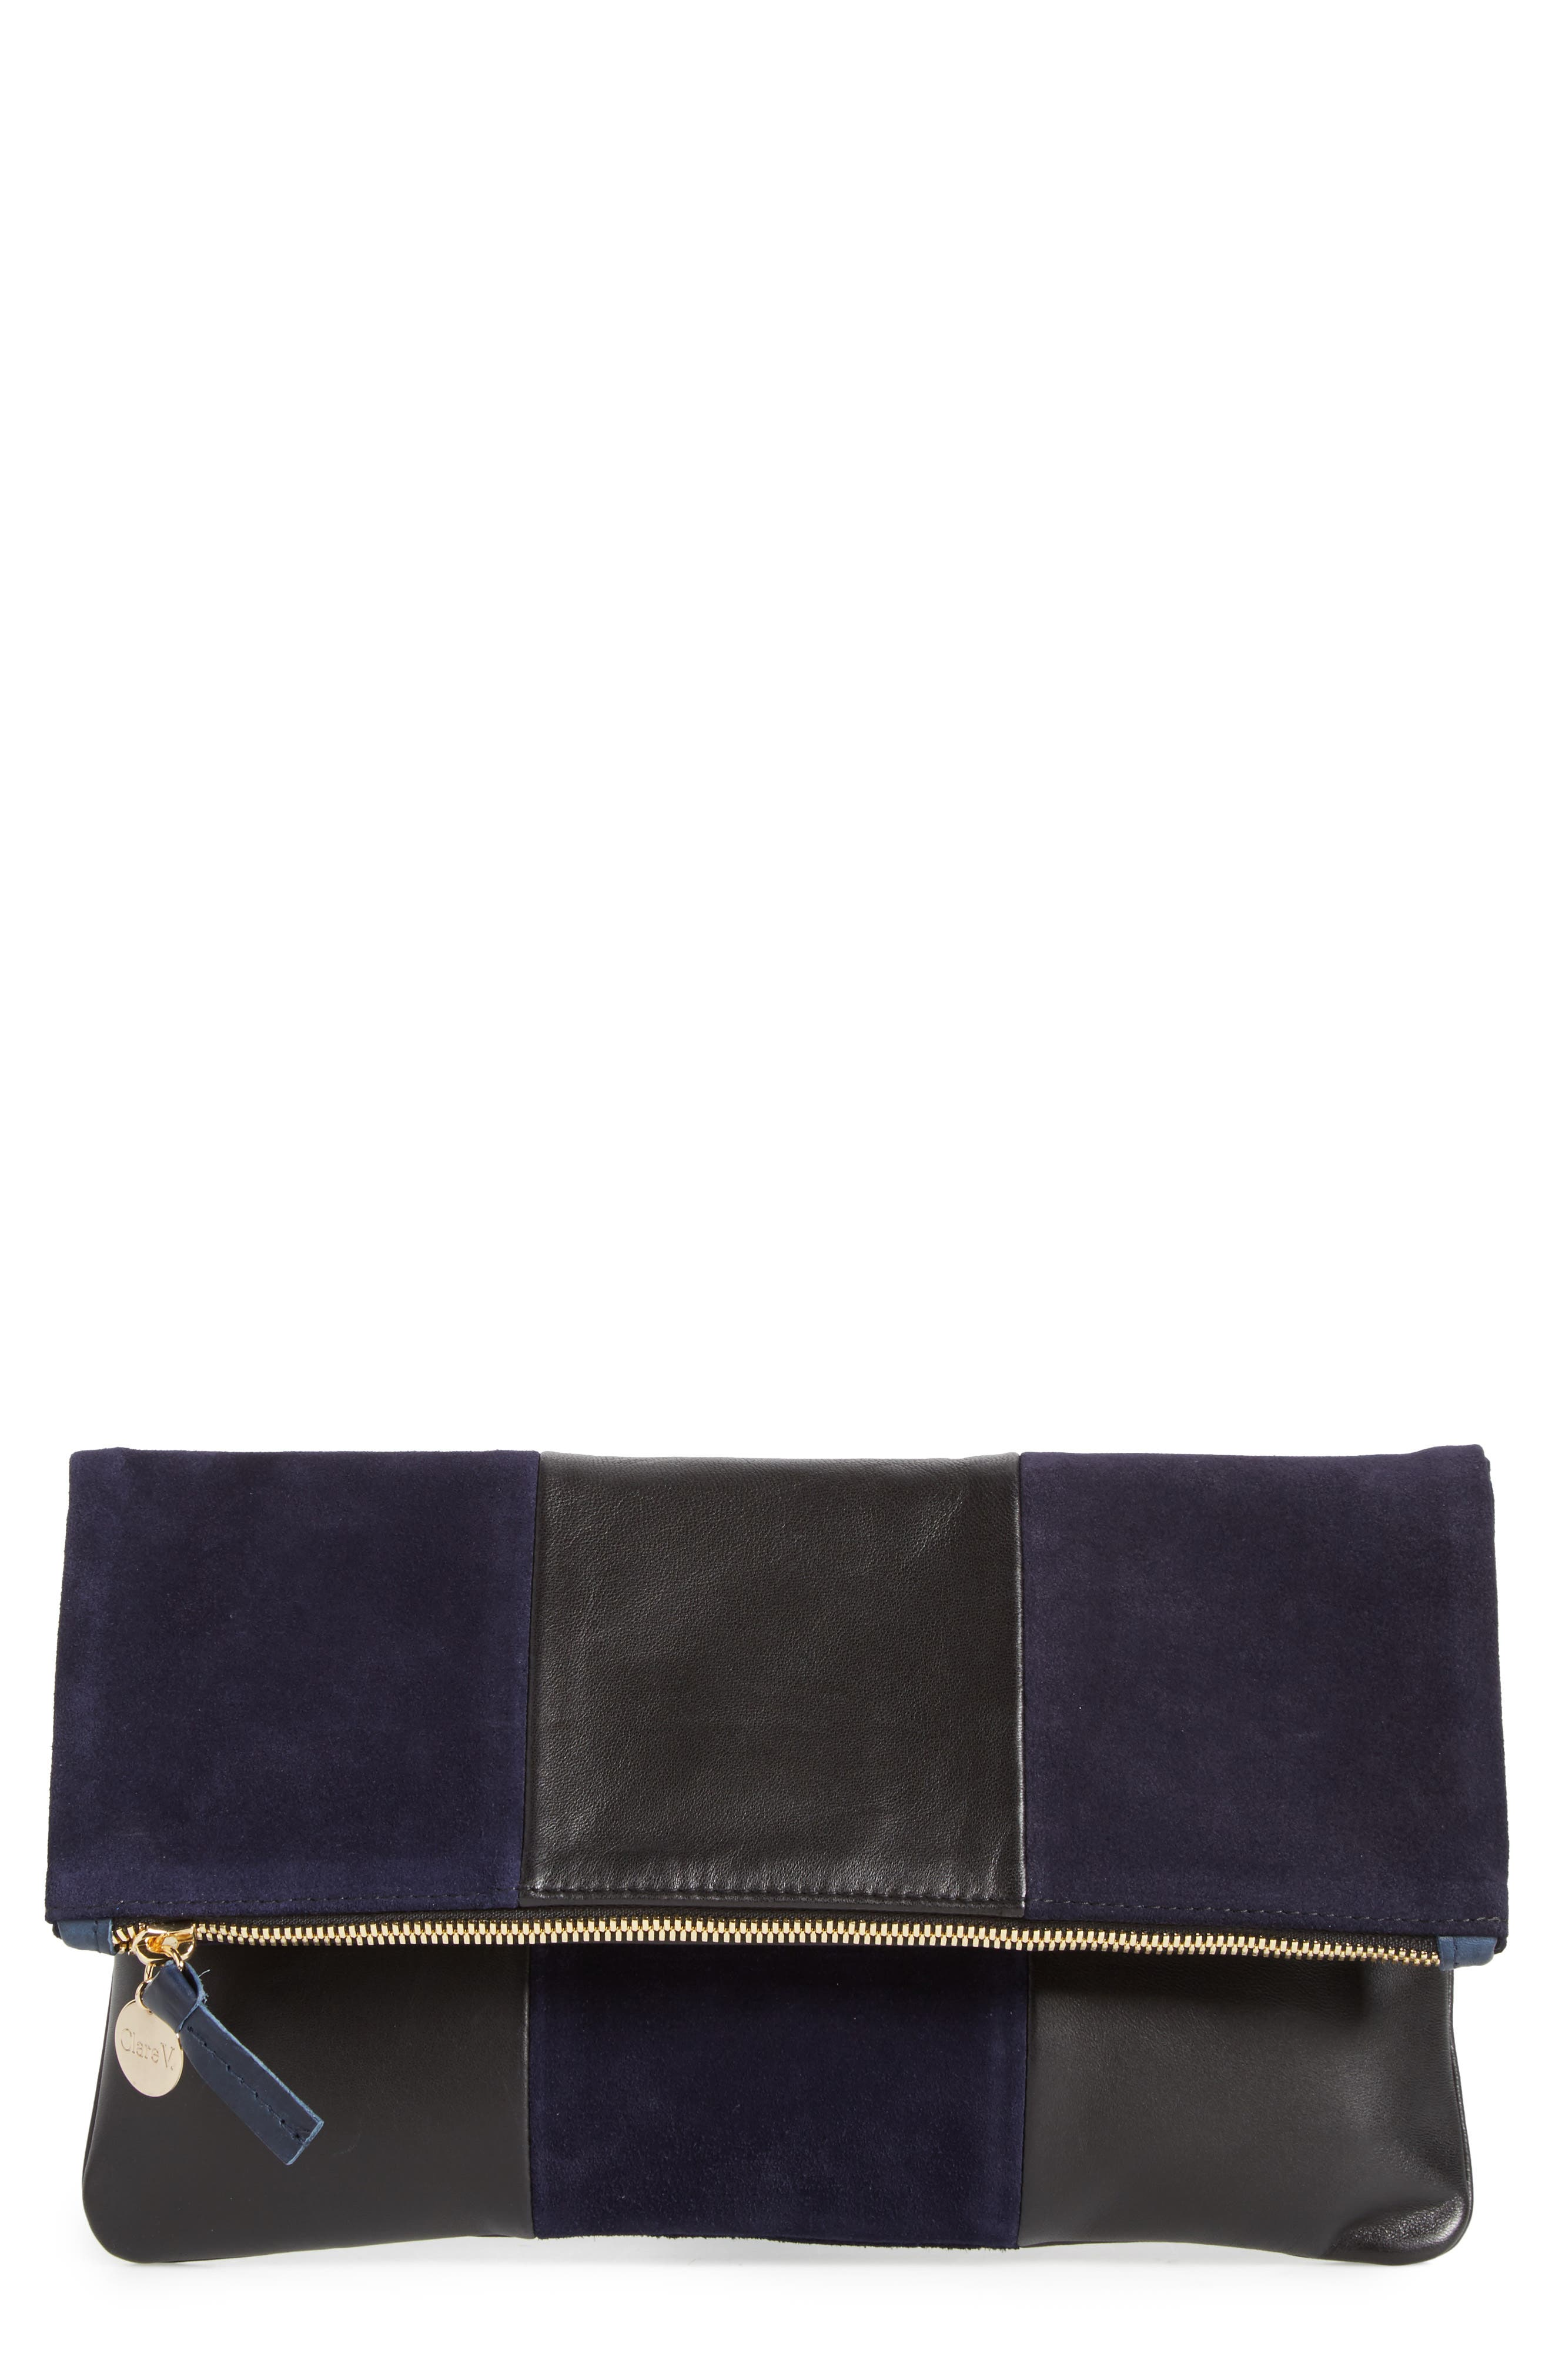 Leather & Suede Foldover Clutch,                             Main thumbnail 1, color,                             Black Nappa/ Navy Suede